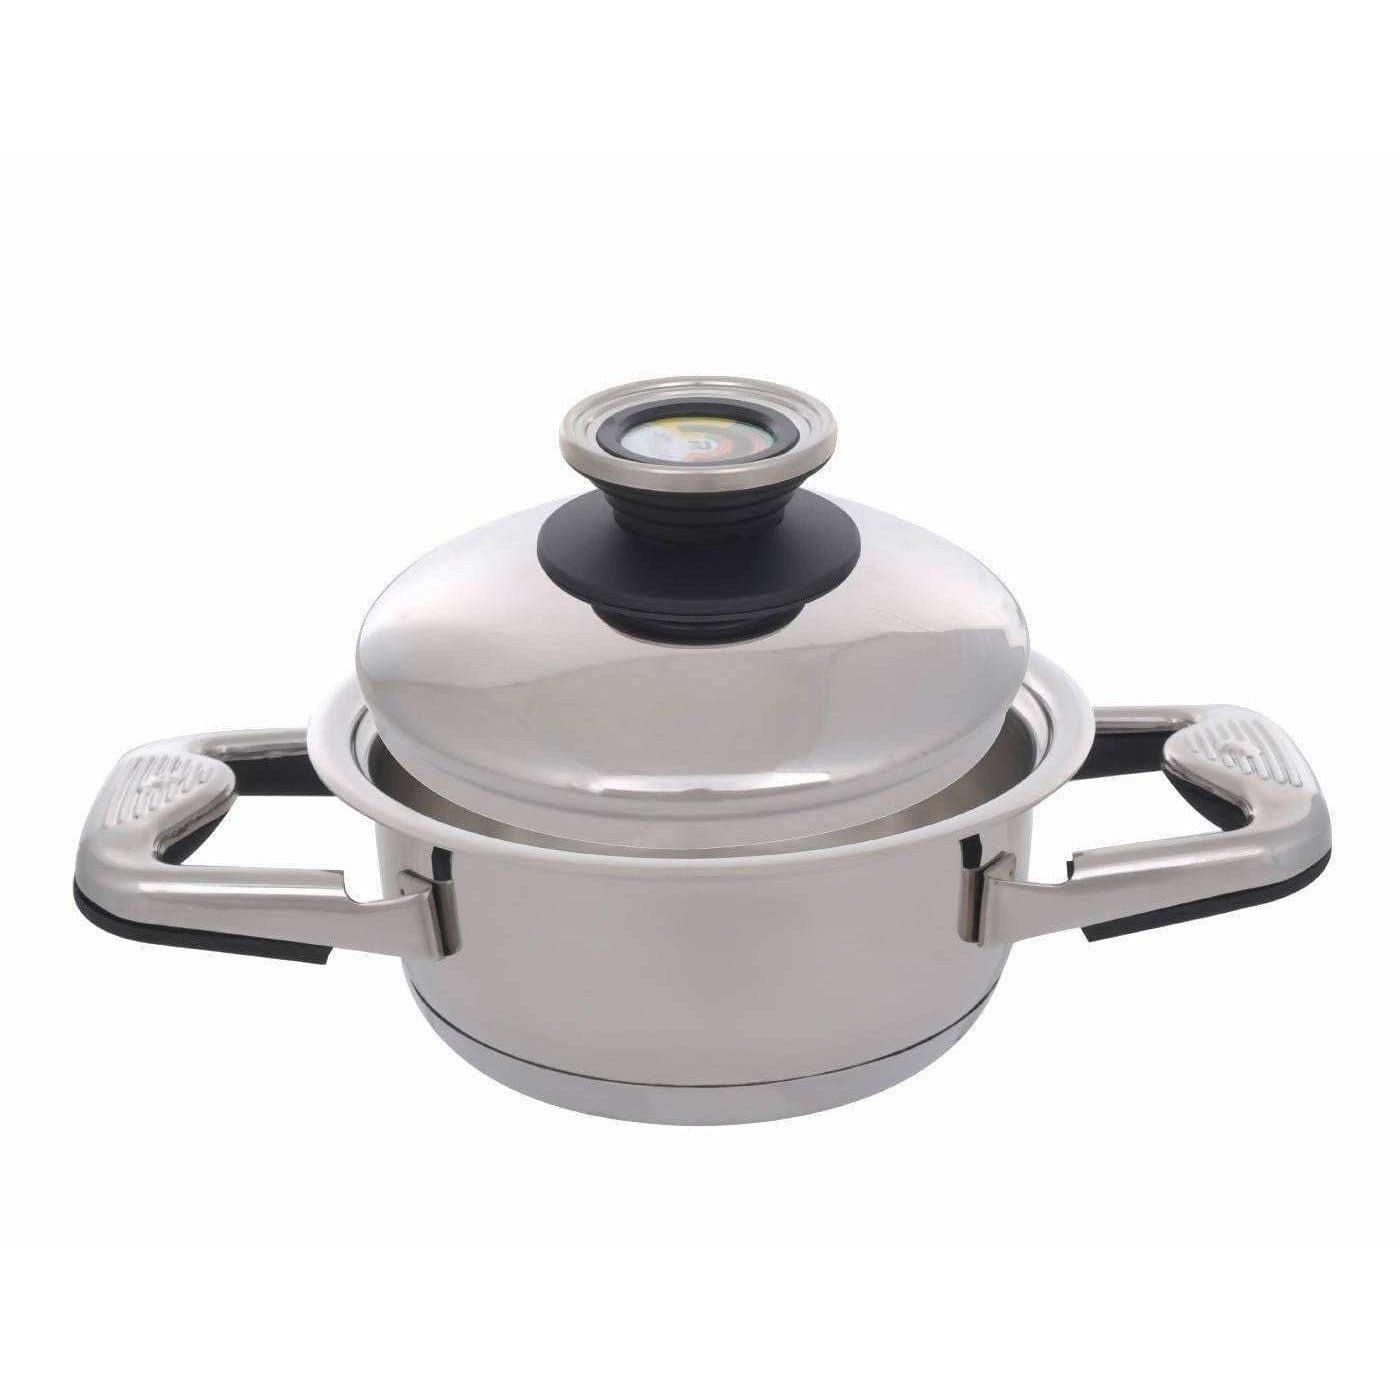 Nutricook - High grade SS 316L Cookware Oil Less & Water Less Sauce Pot with Lid 3 Litre 24 cm dia